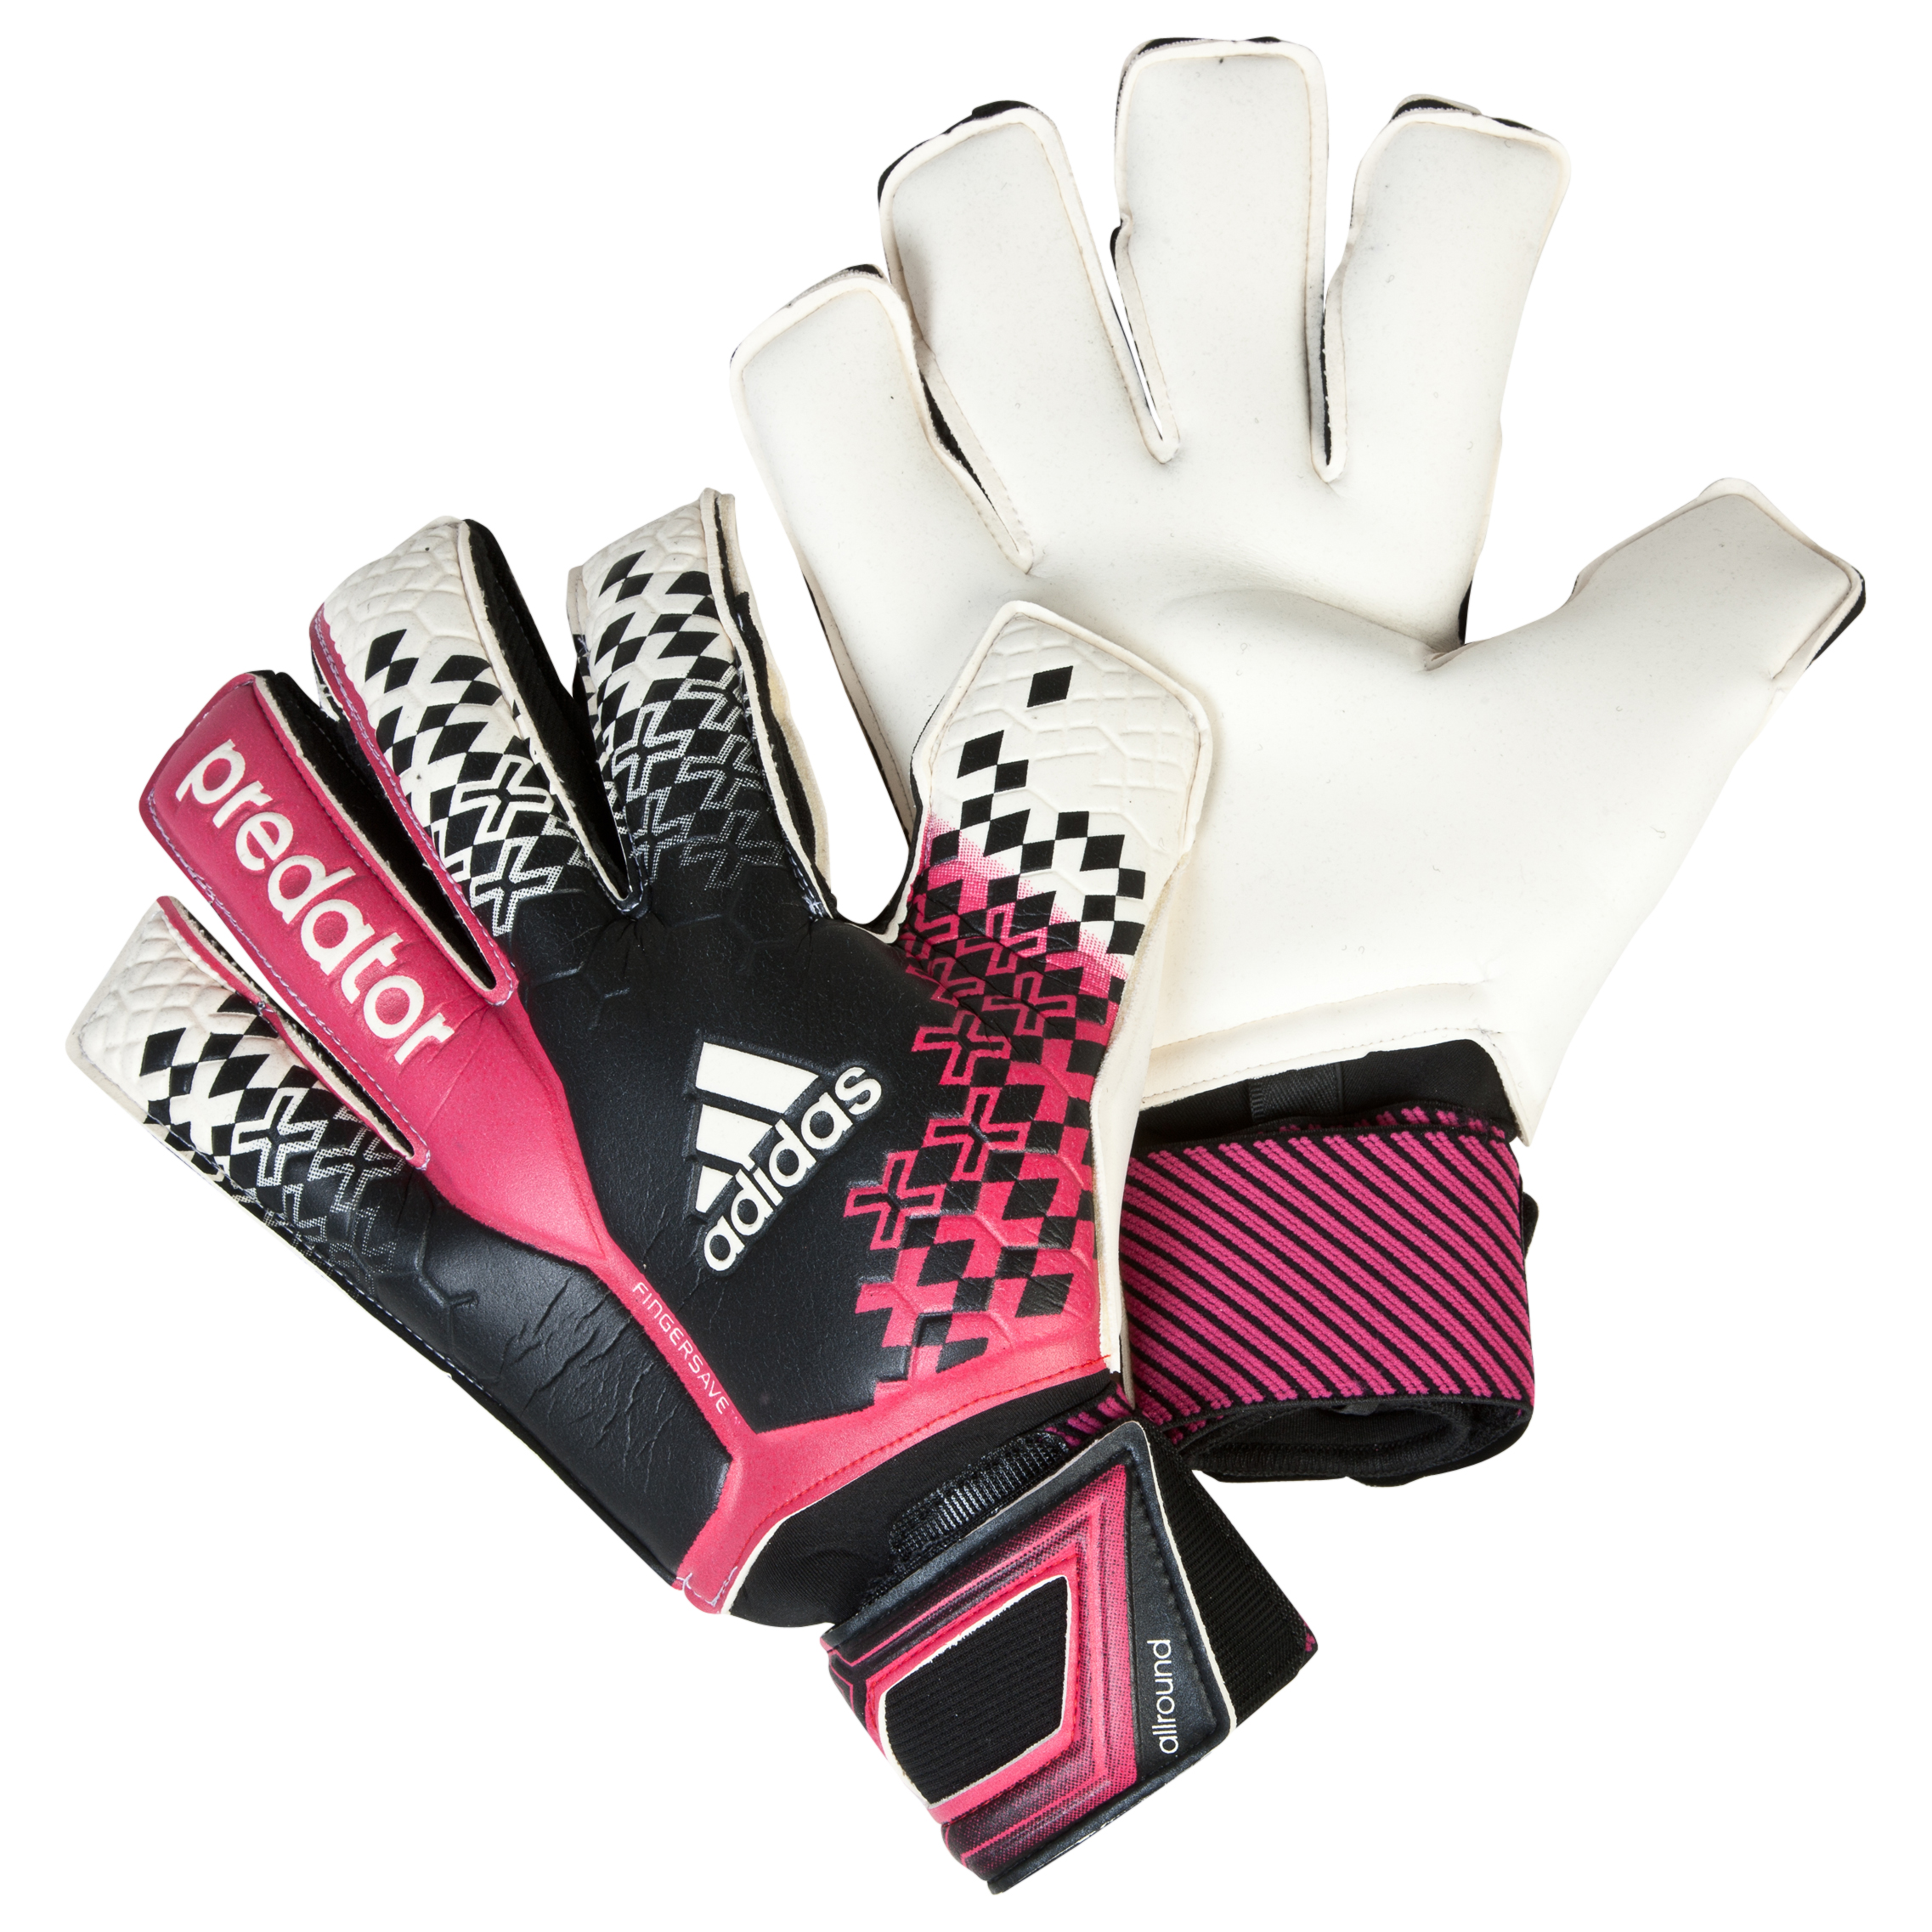 Adidas Predator Fingersave All-Round Goalkeeper Gloves Black